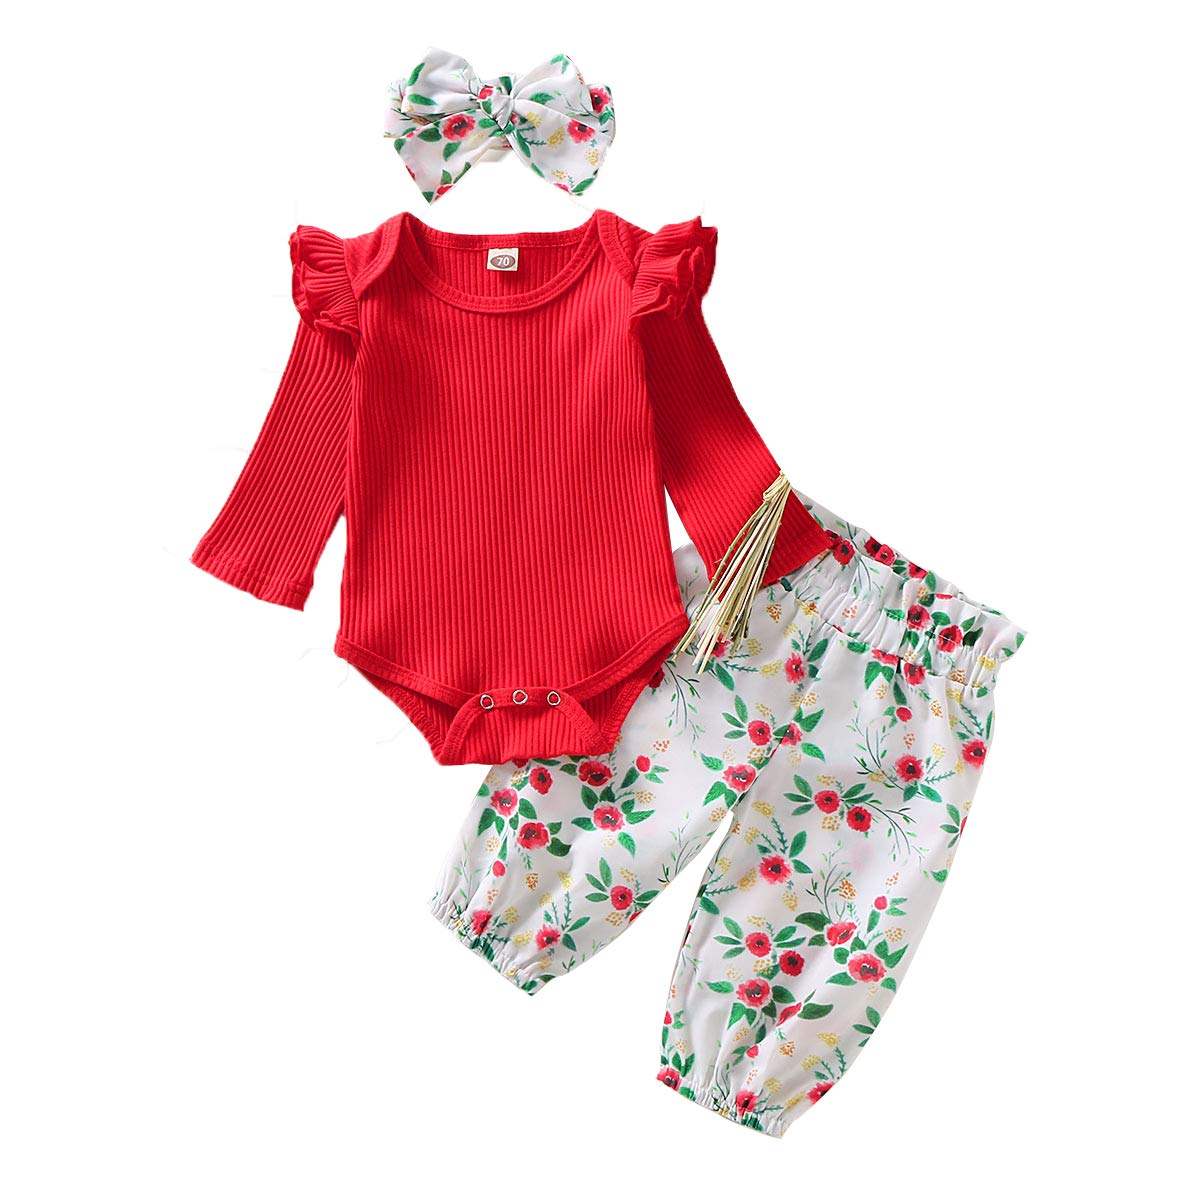 Infant Toddler Newborn Baby Girl Clothes Outfits Long Sleeve Floral Lace Ruffle Romper Pants Bowknot Headband Set